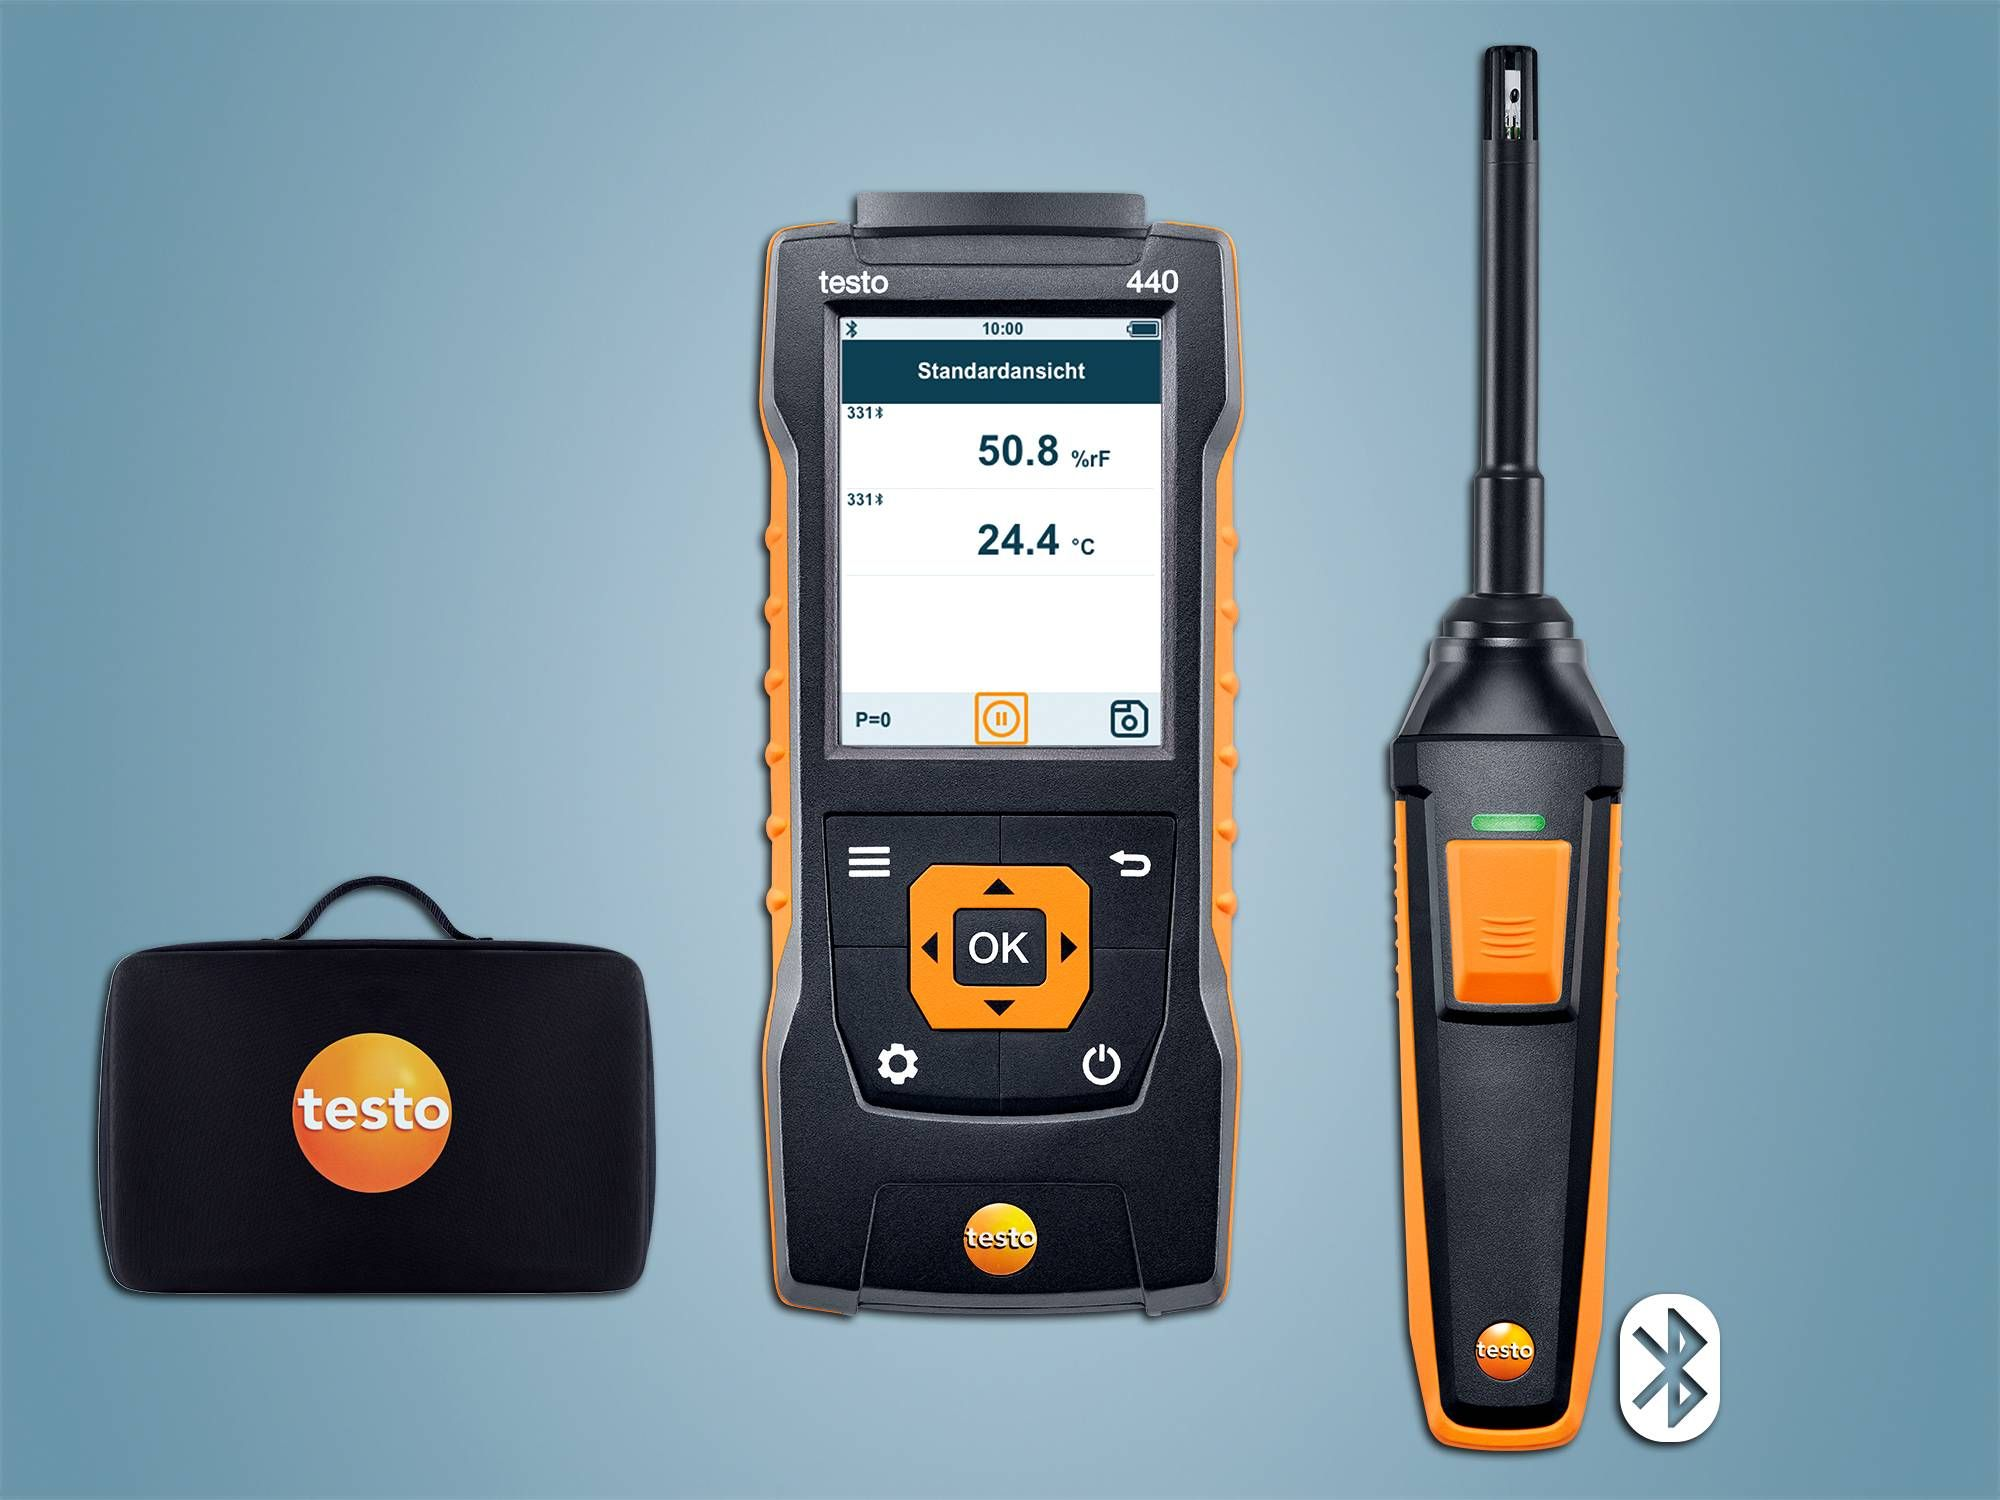 testo 440 vocht-set met Bluetooth